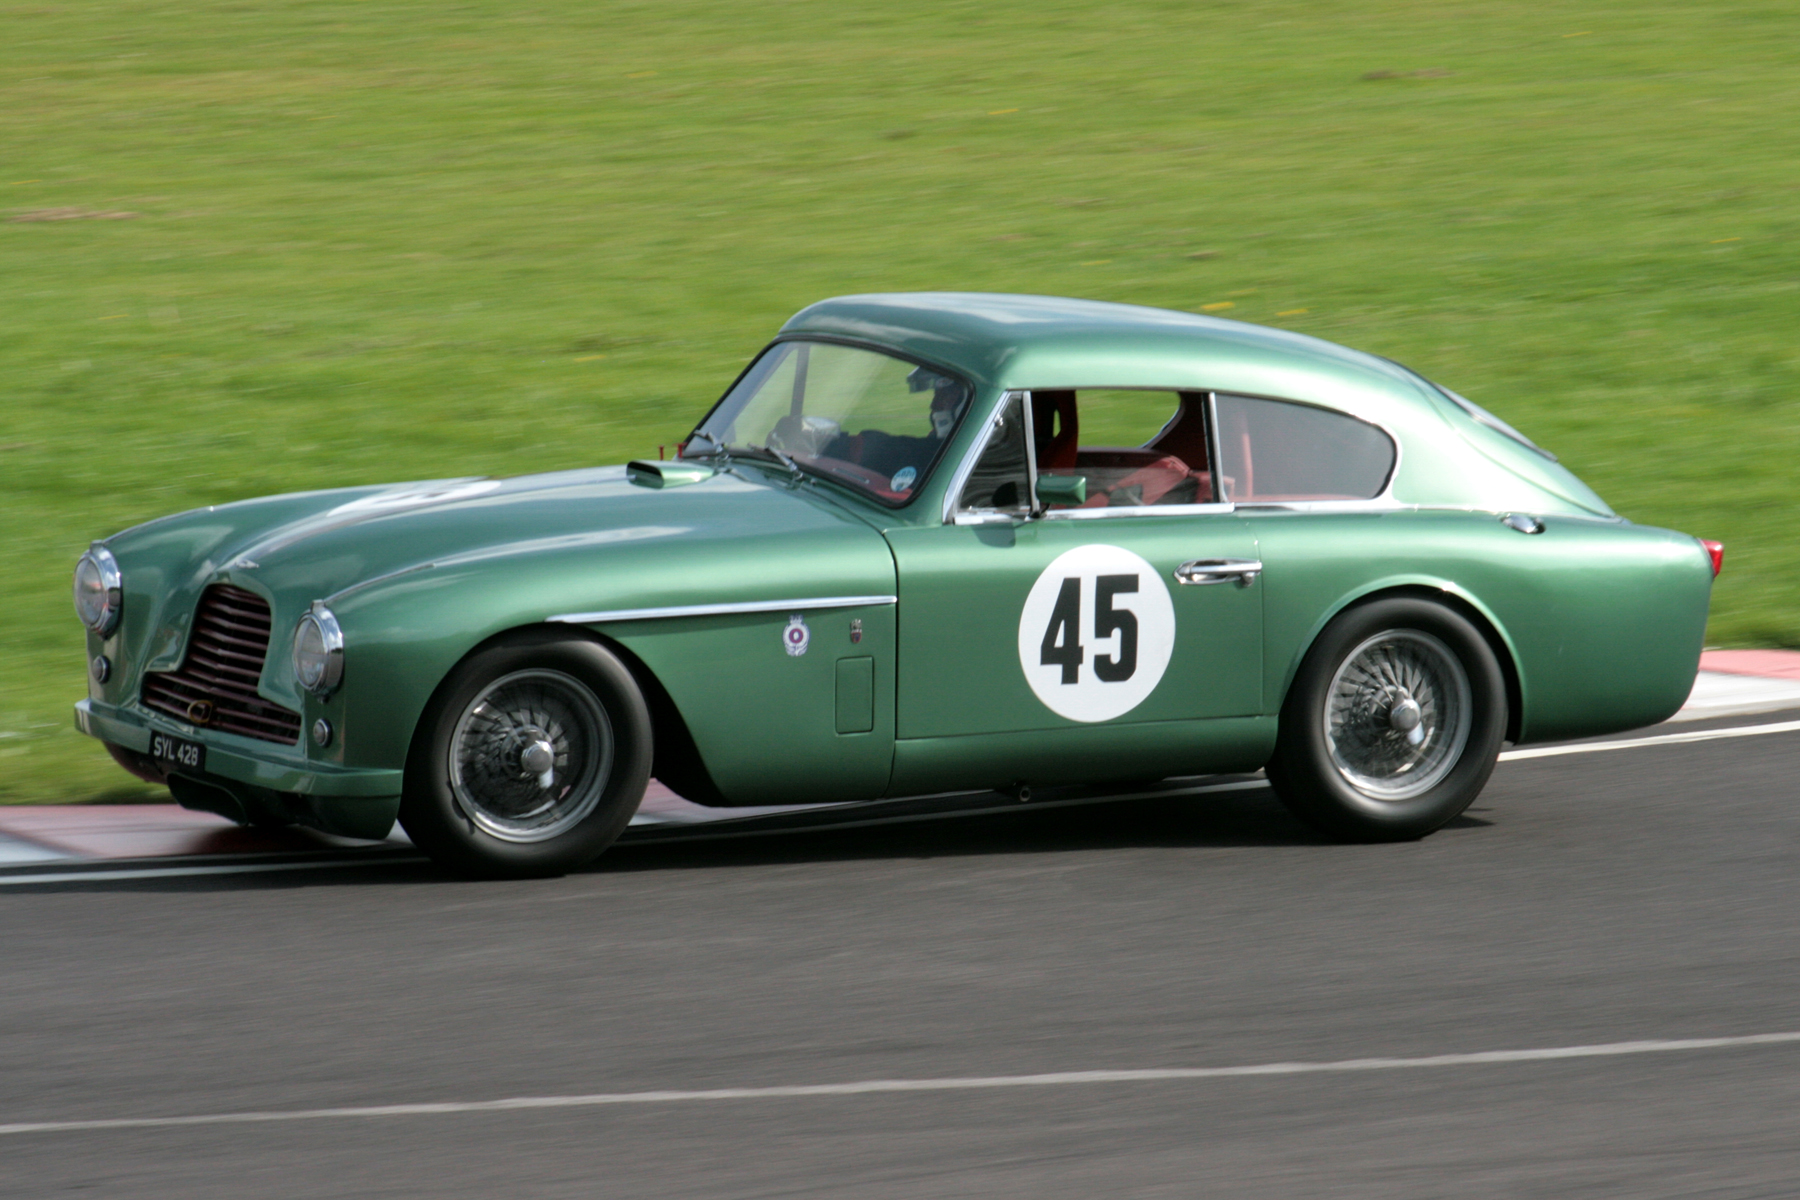 Richard Walker, first time out in his newly acquired DB2/4 Mk11, acquitted himself well, qualifying 16th. He improved his best qualifying lap time by over 5 seconds during the race and finished a fine 12th.      Photo - John Turner